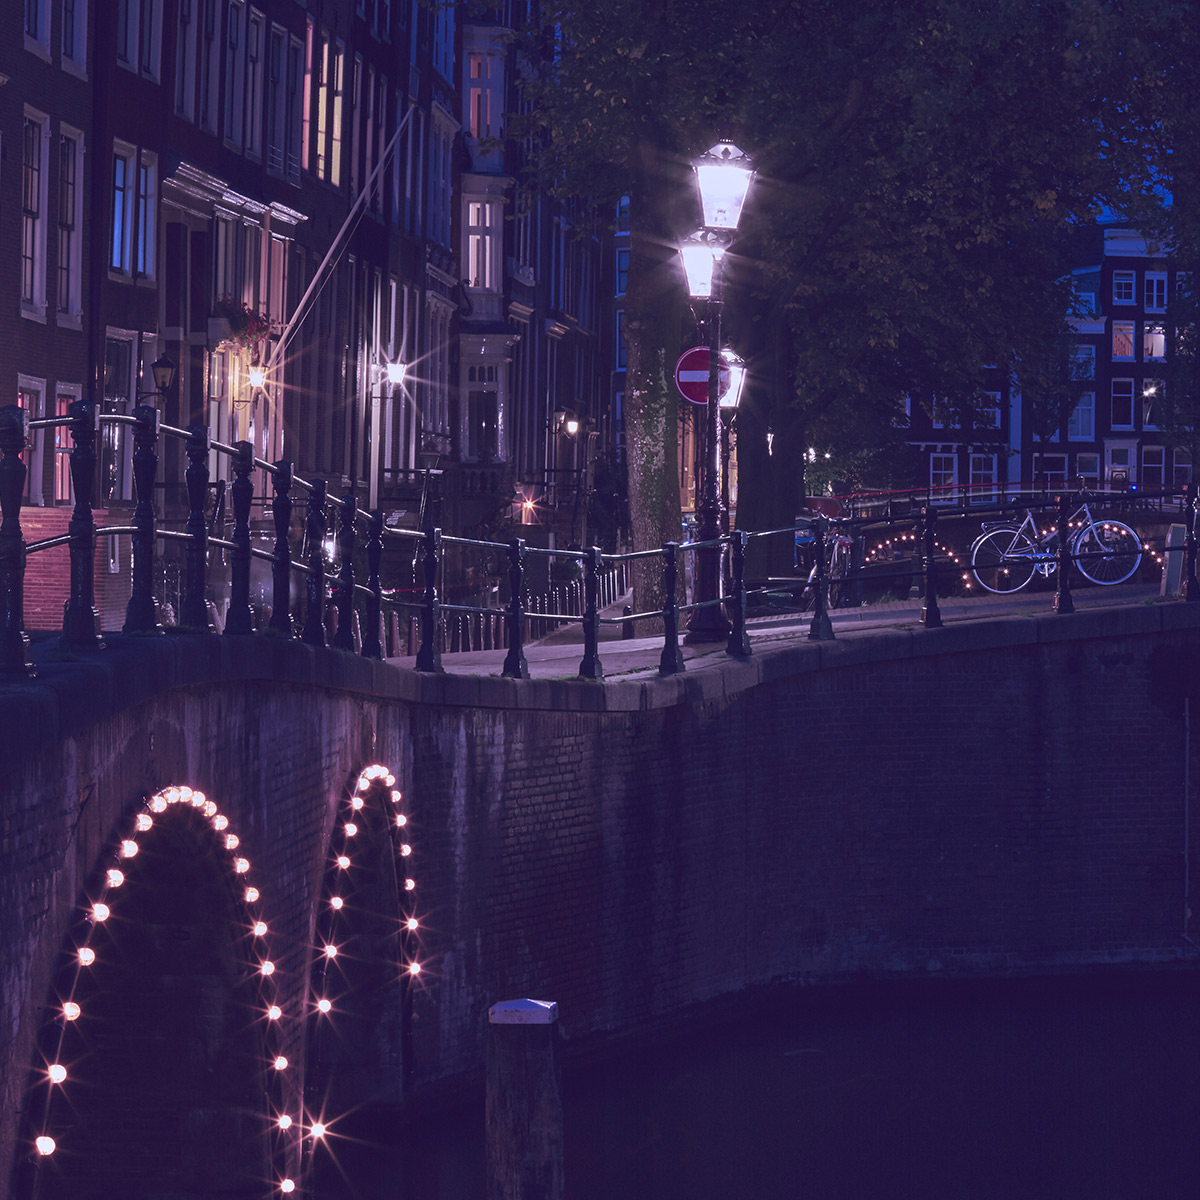 SPX Agency Work: OurDomain, Amsterdam canal by night